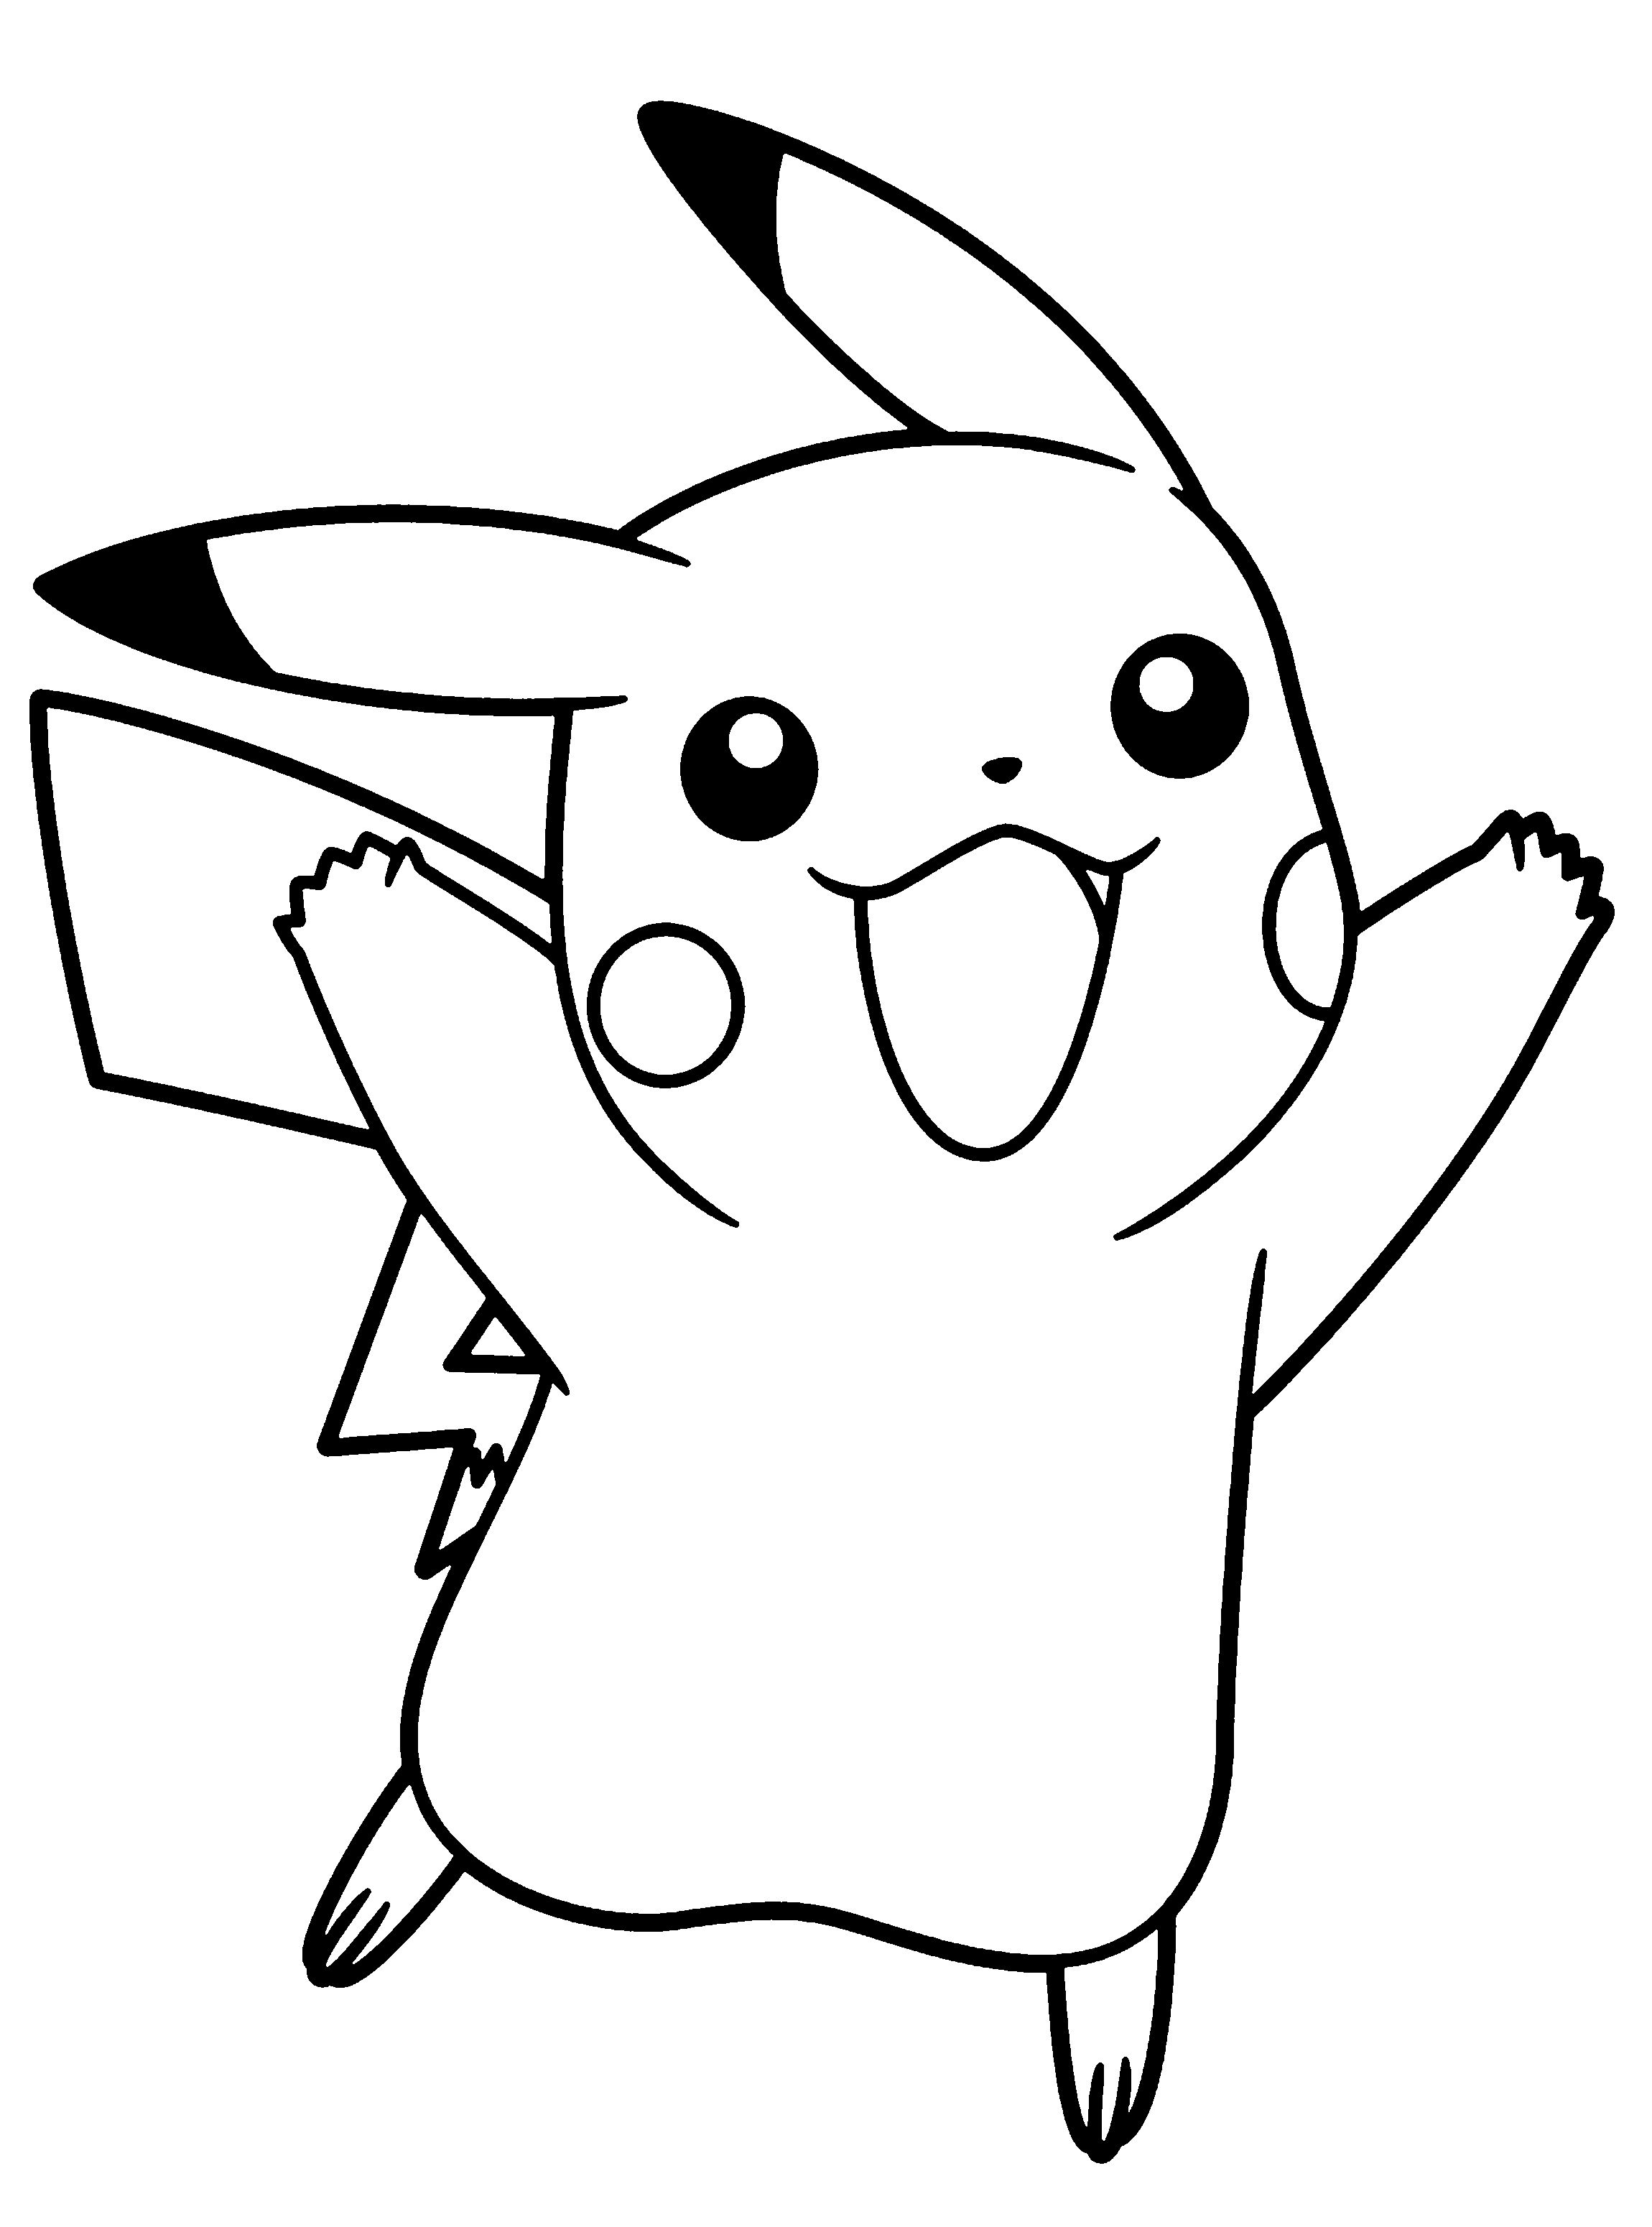 Pikatchu Coloring Pikachu Coloring Pikachu Coloring Book Pikachu Coloring Games Pikachu Color Pikachu Coloring Page Pokemon Coloring Pages Pokemon Coloring